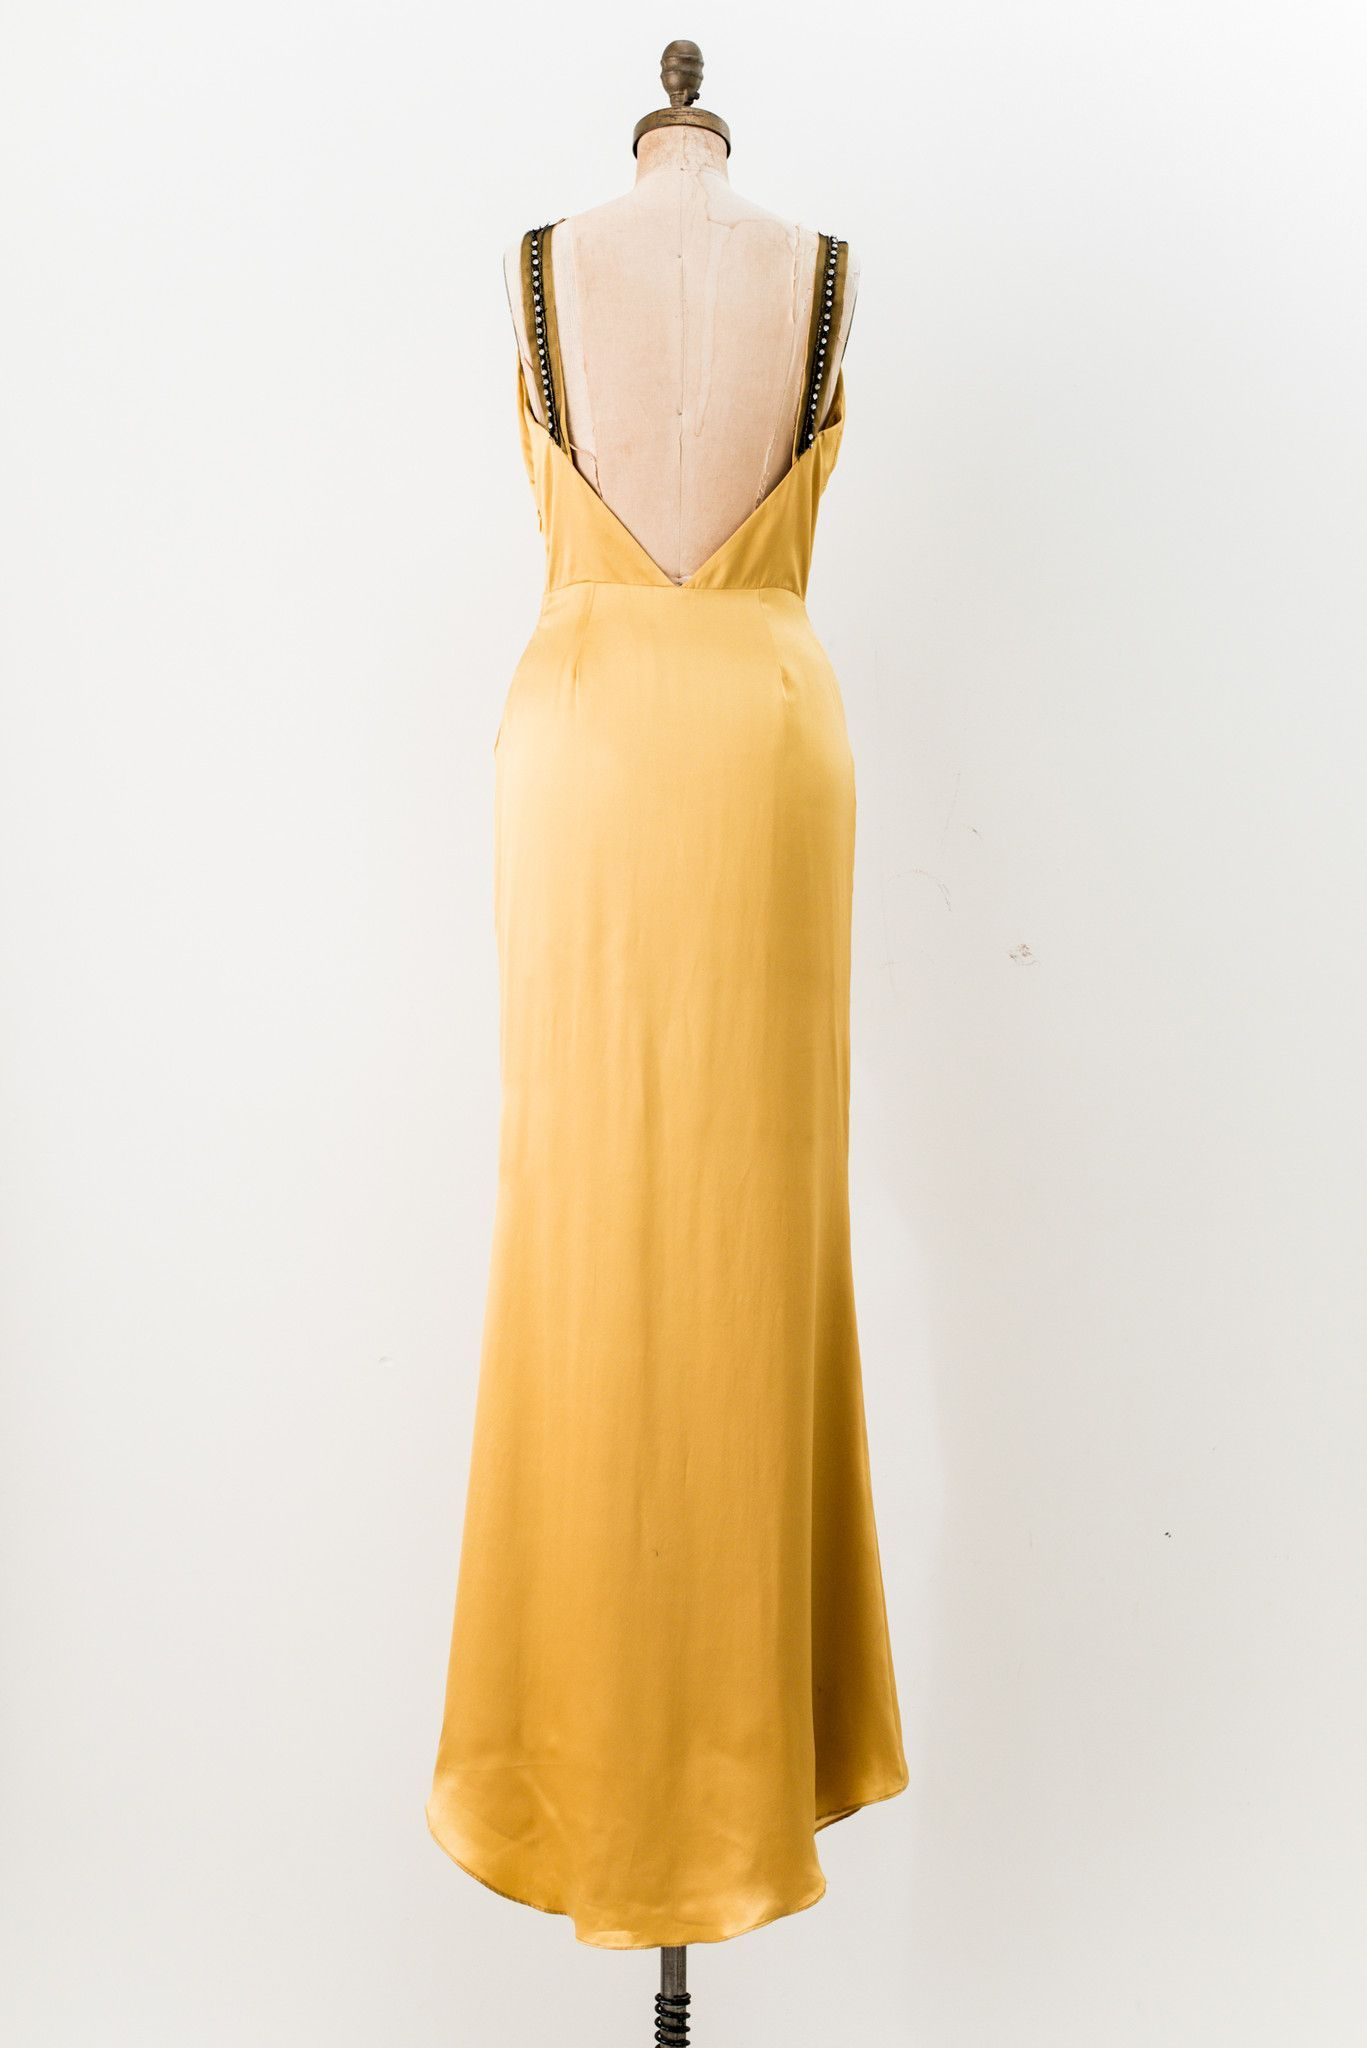 Vintage Goldenrod Satin Gown - S/M | Satin gown, Gowns and Gold weddings